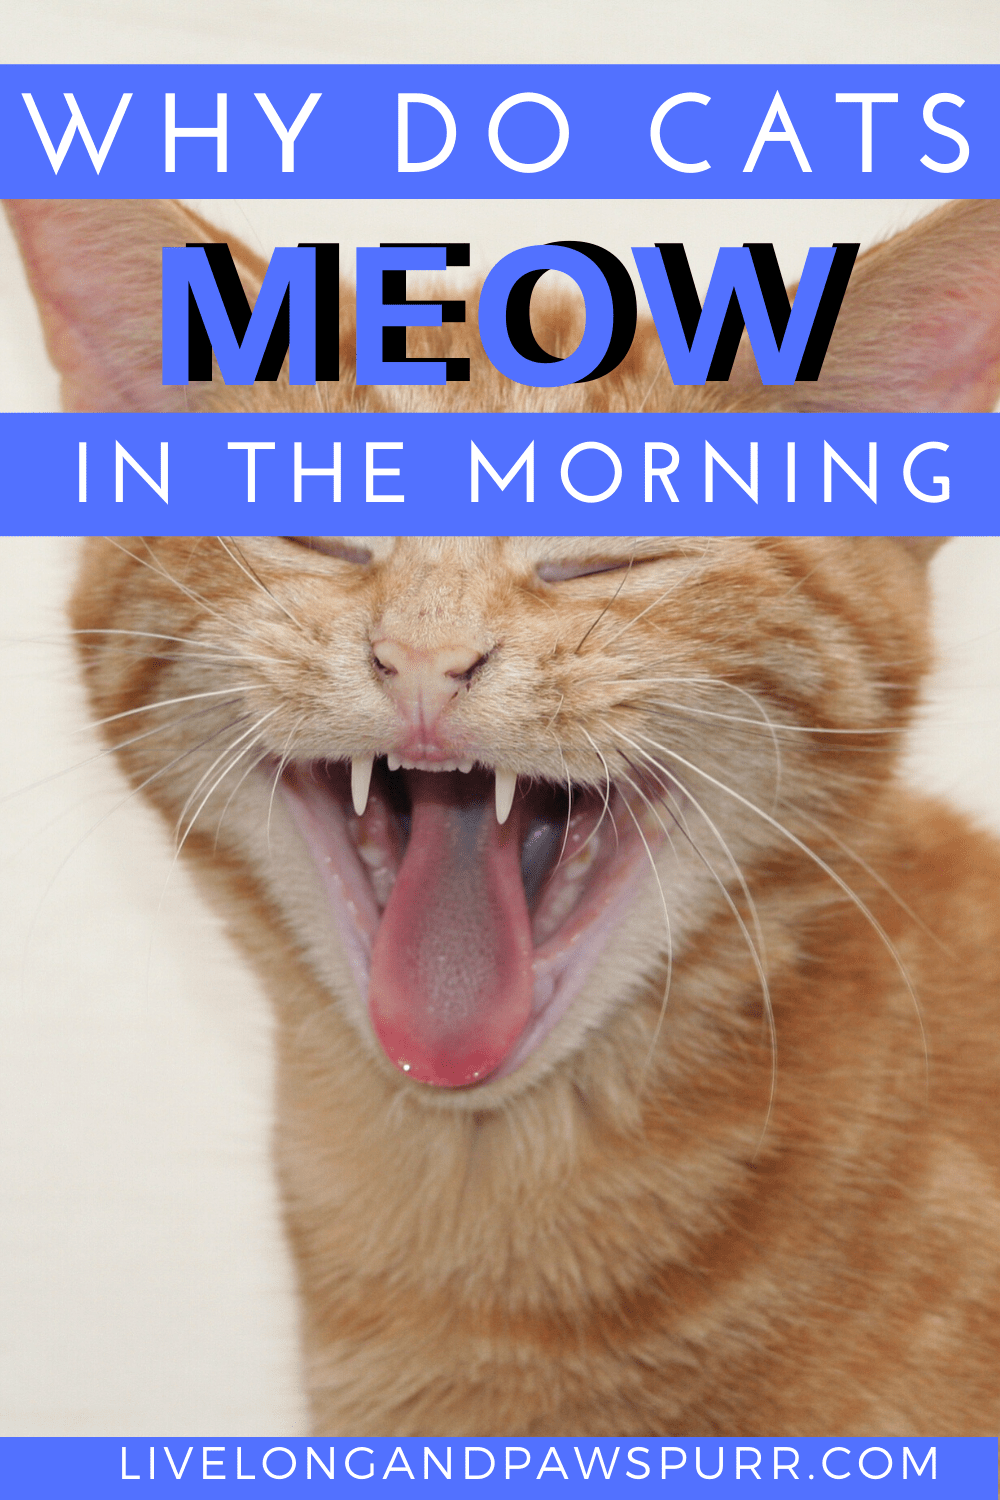 Why Does My Cat Meow In The Morning Live Long And Pawspurr In 2020 Kitten Meowing Cat Training Cat Training Kittens